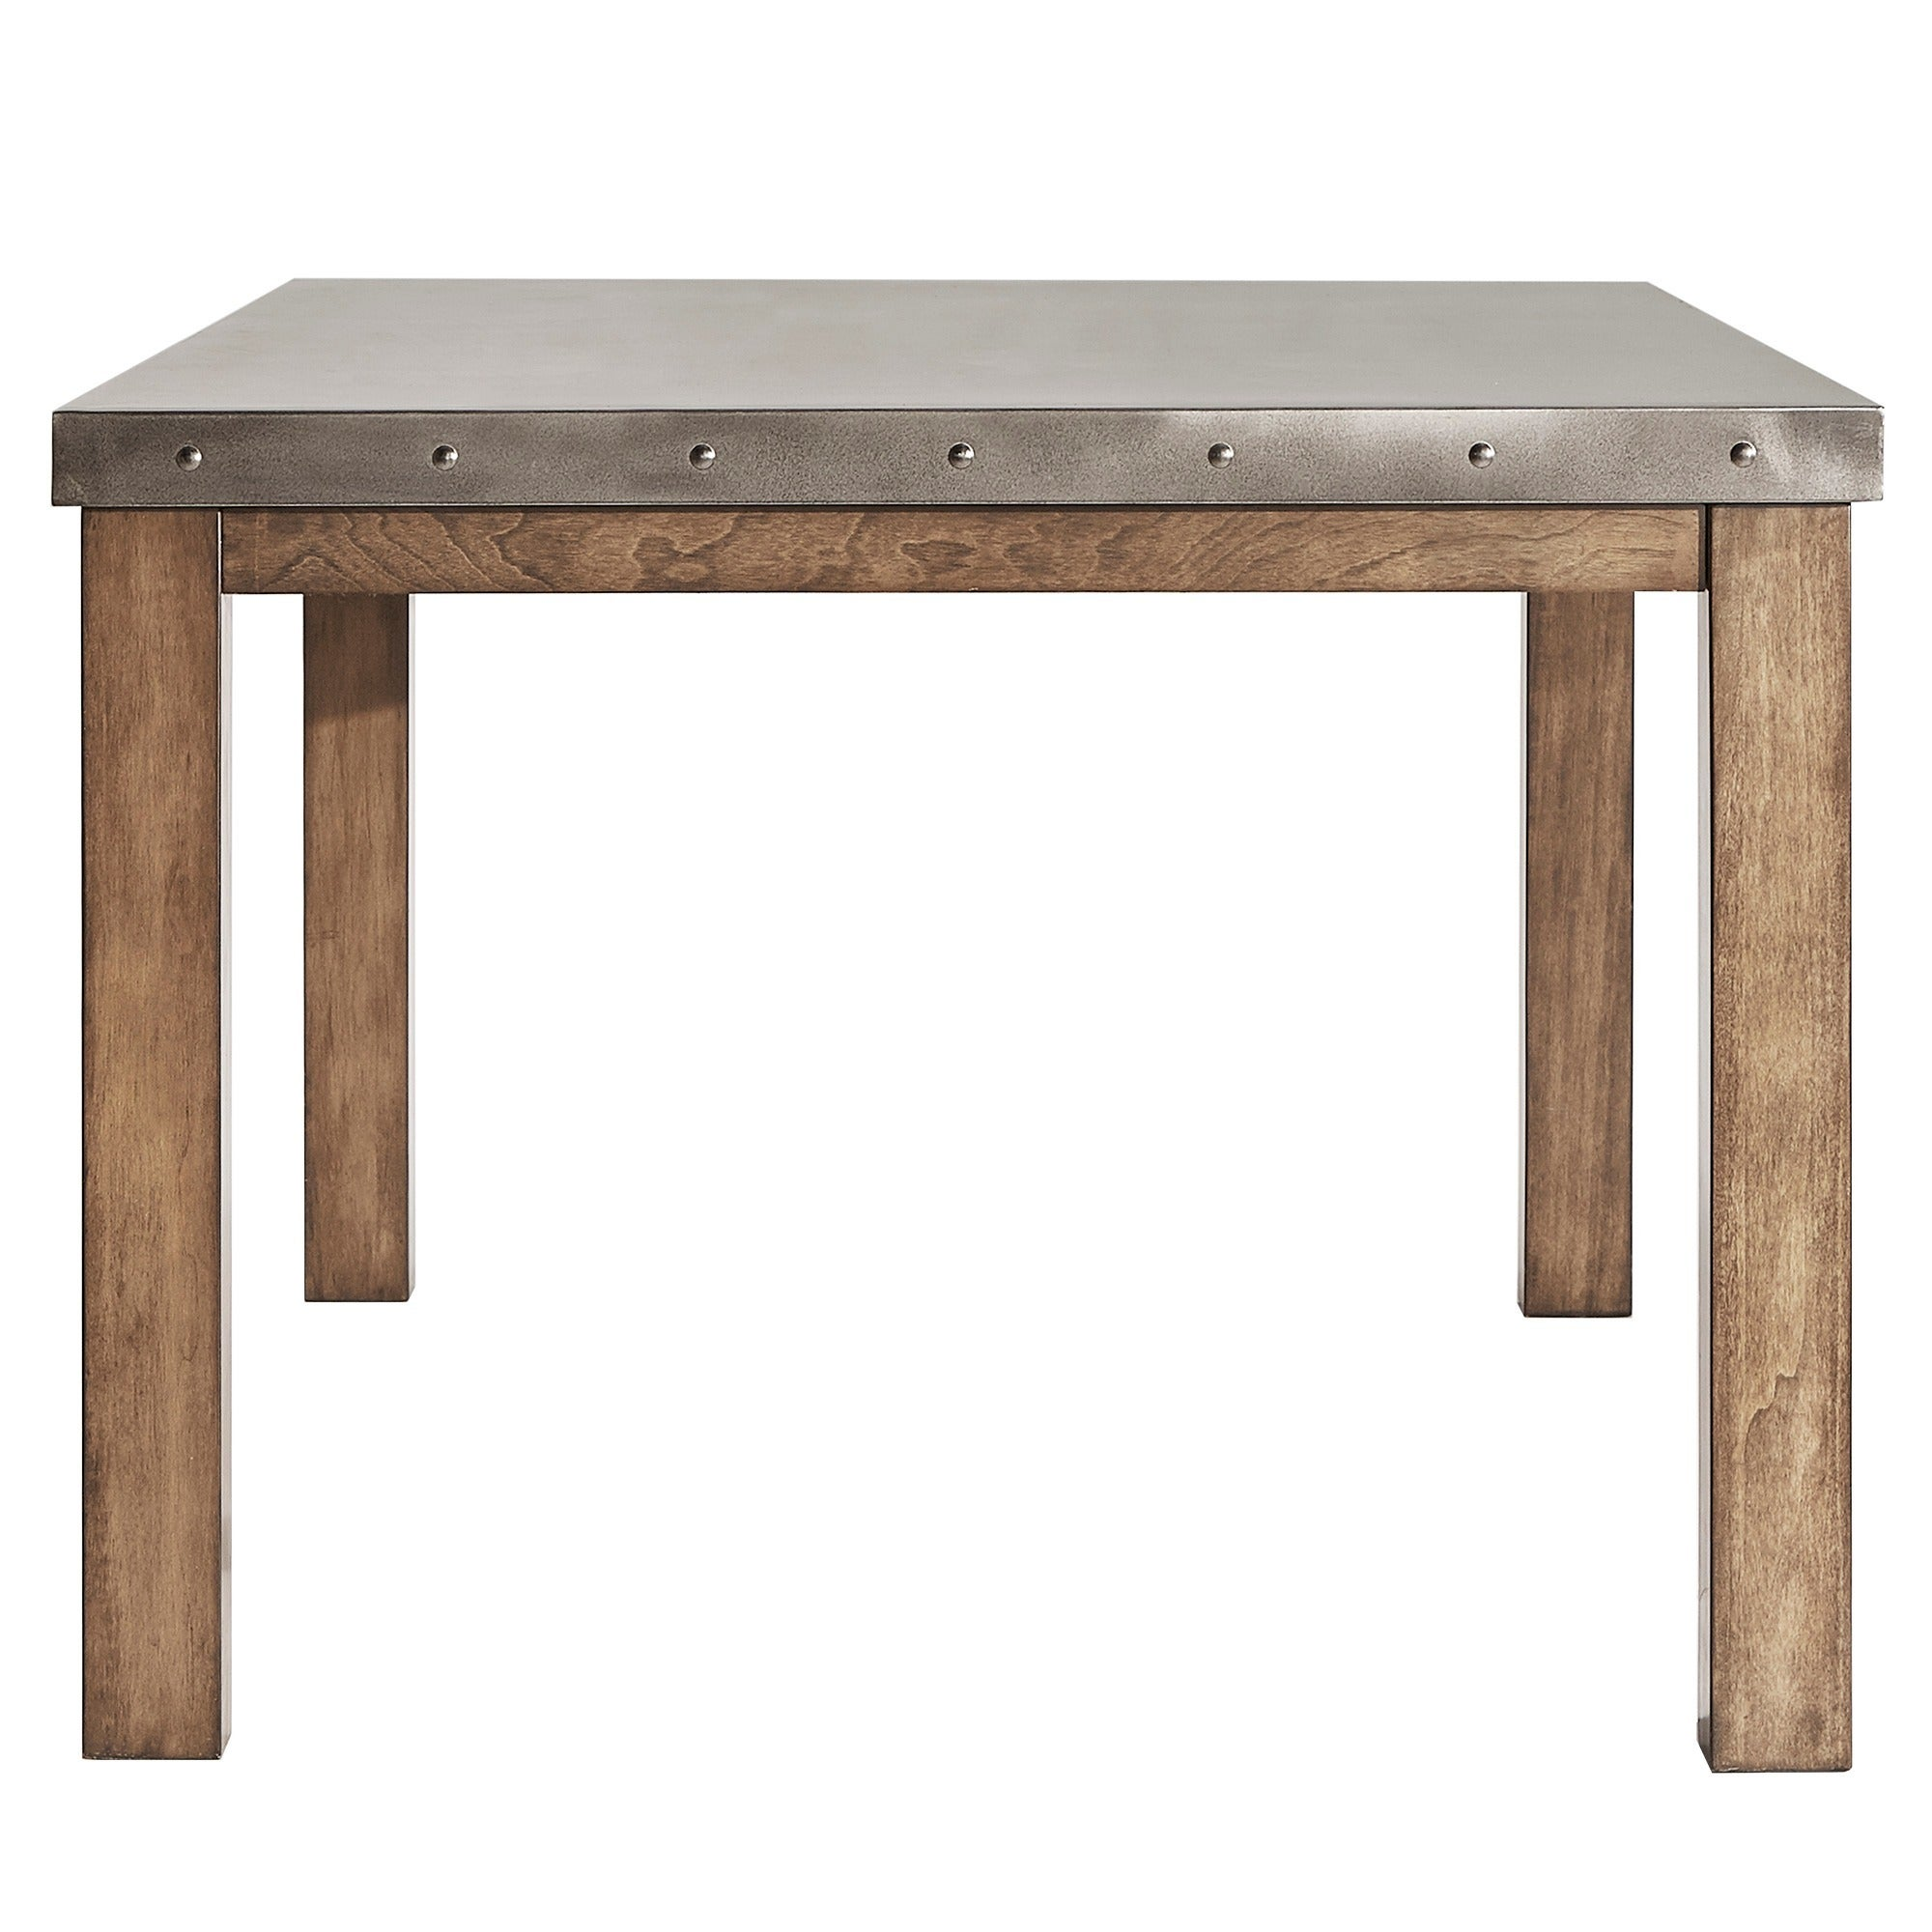 Cassidy Stainless Steel Top Rectangle Dining Table by iNSPIRE Q Artisan -  Free Shipping Today - Overstock.com - 20291190